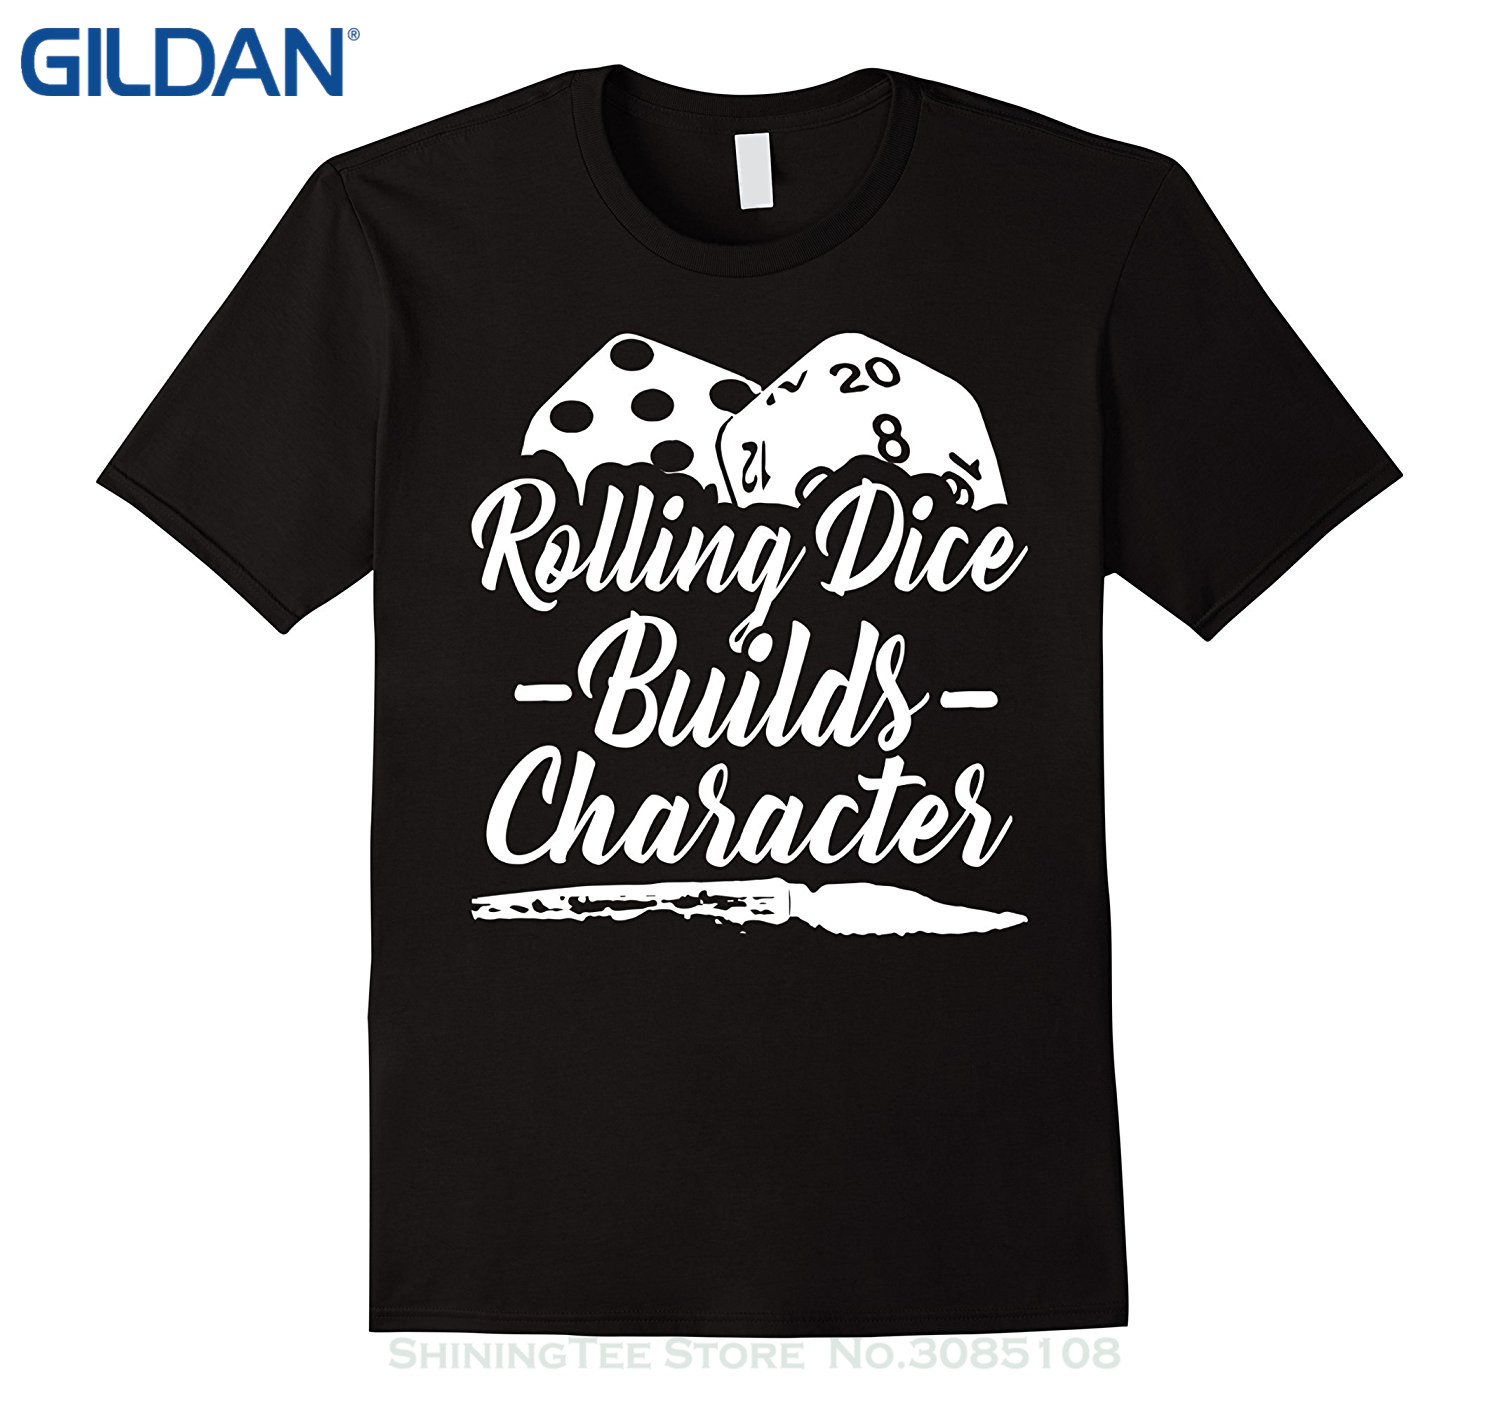 GILDAN For Man Hipster O-neck Causal Cool Tops Rolling Dice Builds Character T-shirt. Ta ...